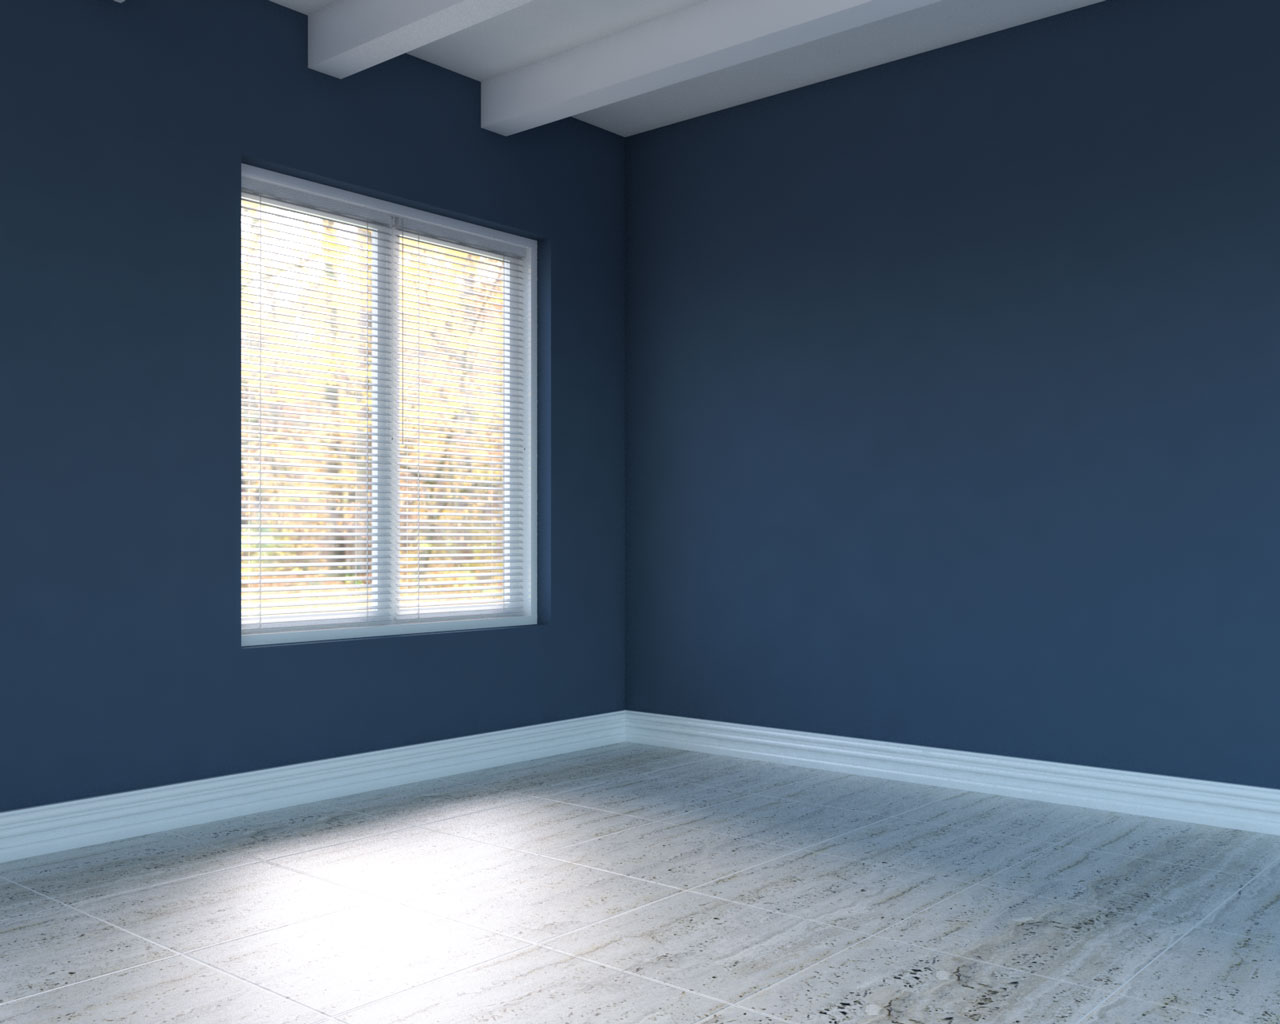 Silver travertine floor with blue walls